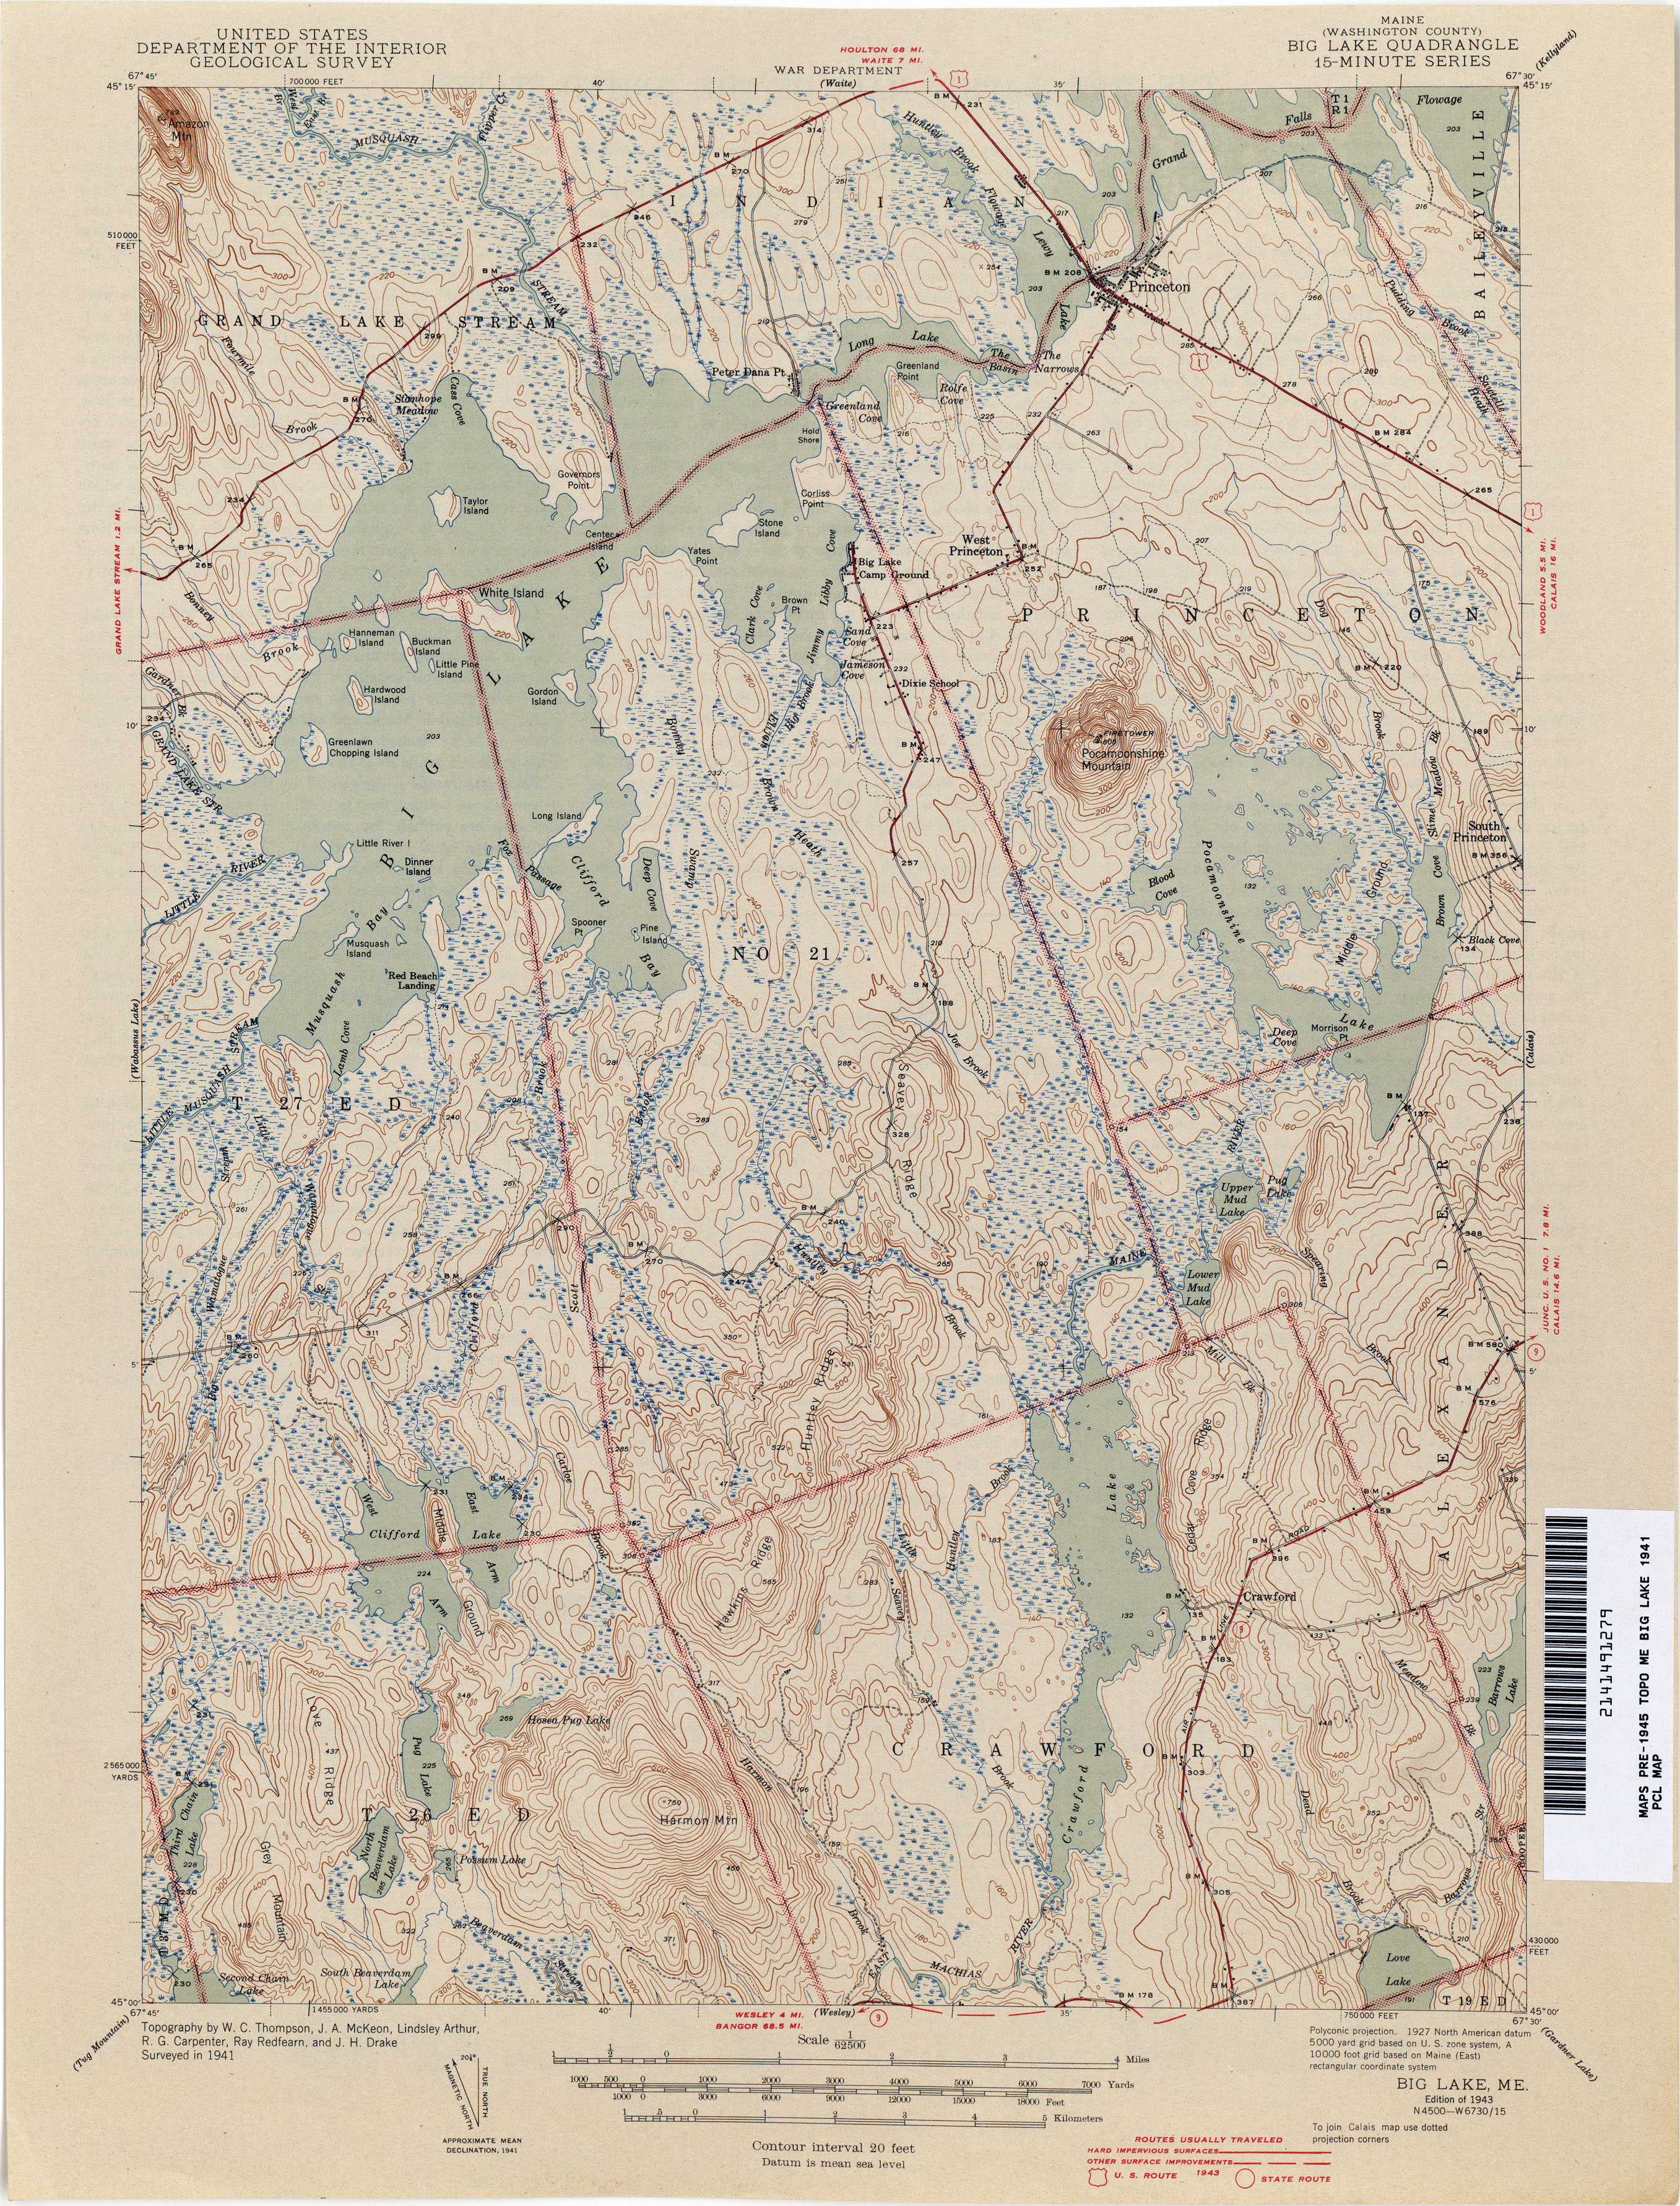 Maine Historical Topographic Maps - Perry-Castañeda Map ... on maine soil maps, maine county maps, maine pond maps, maine satellite maps, maine historical maps, maine flood of 1987, maine world map, topographic maps, maine city maps, maine aerial maps, maine road maps, maine nautical maps, maine united states, maine hunting magazines, maine state maps, maine medical center map, maine water, maine elevation maps, maine lake maps, maine hiking trail maps,